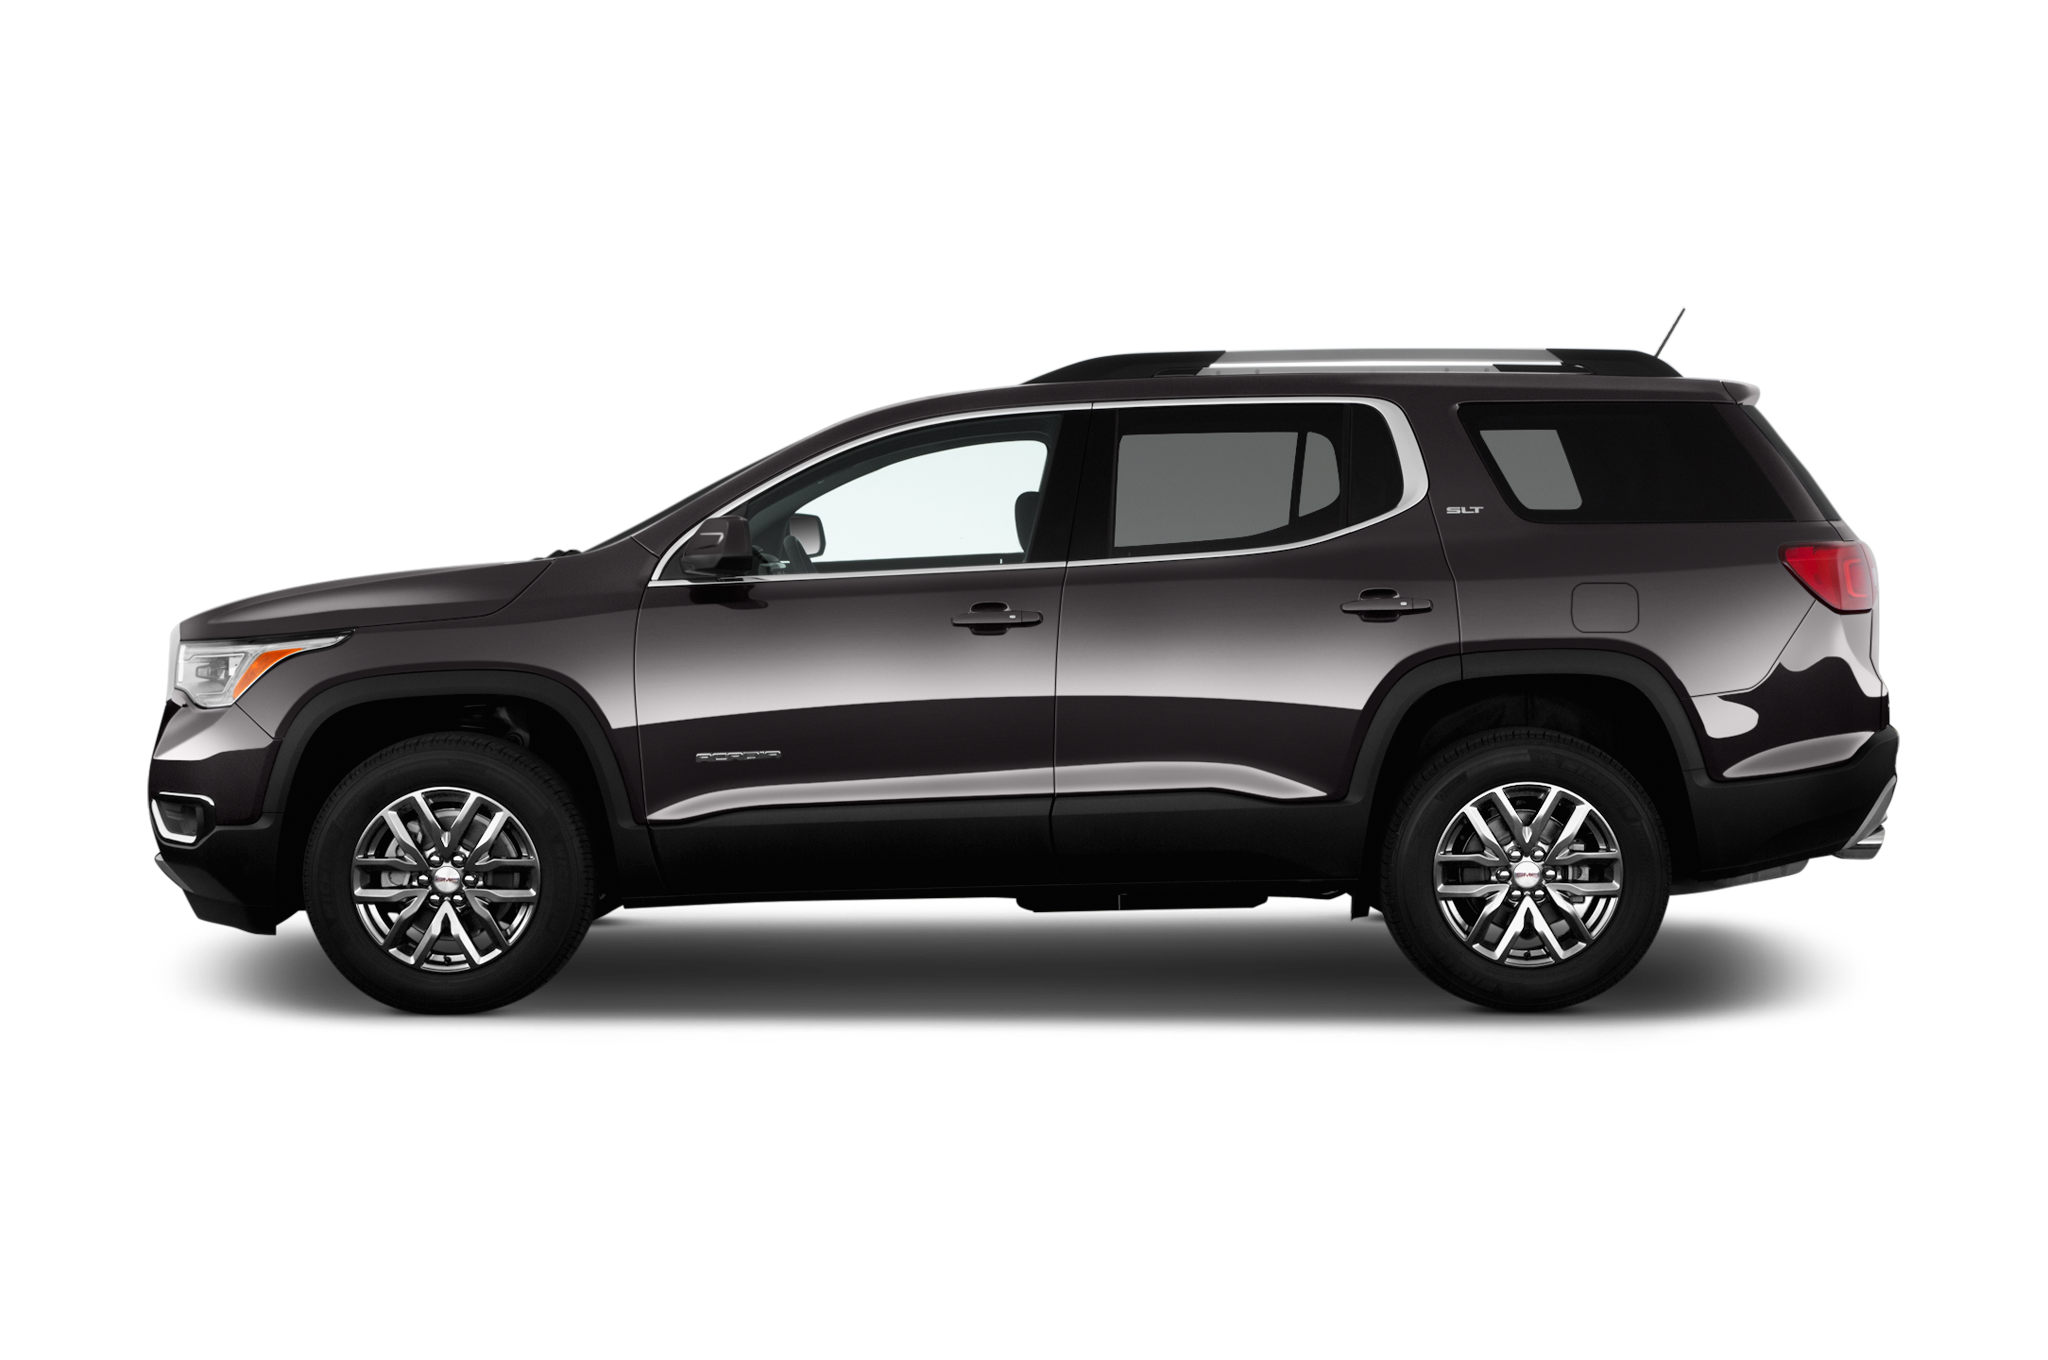 2016 gmc acadia to remain on sale alongside new 2017 model automobile magazine. Black Bedroom Furniture Sets. Home Design Ideas